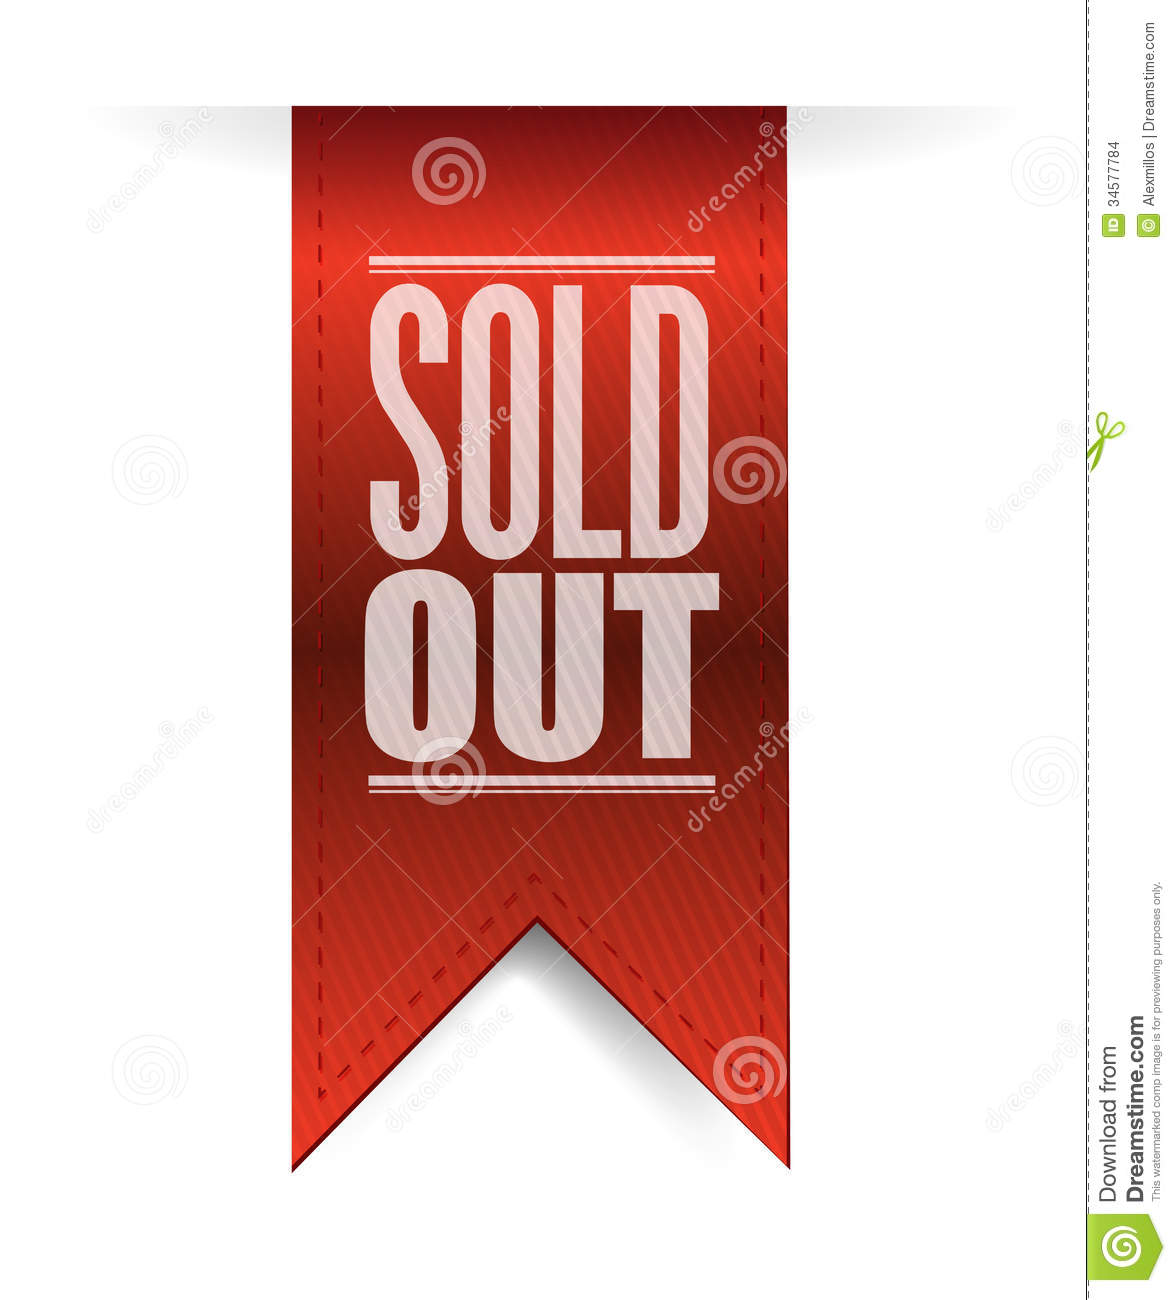 Store Banne Solde Sold Out Textured Banner Illustration Design Stock Images